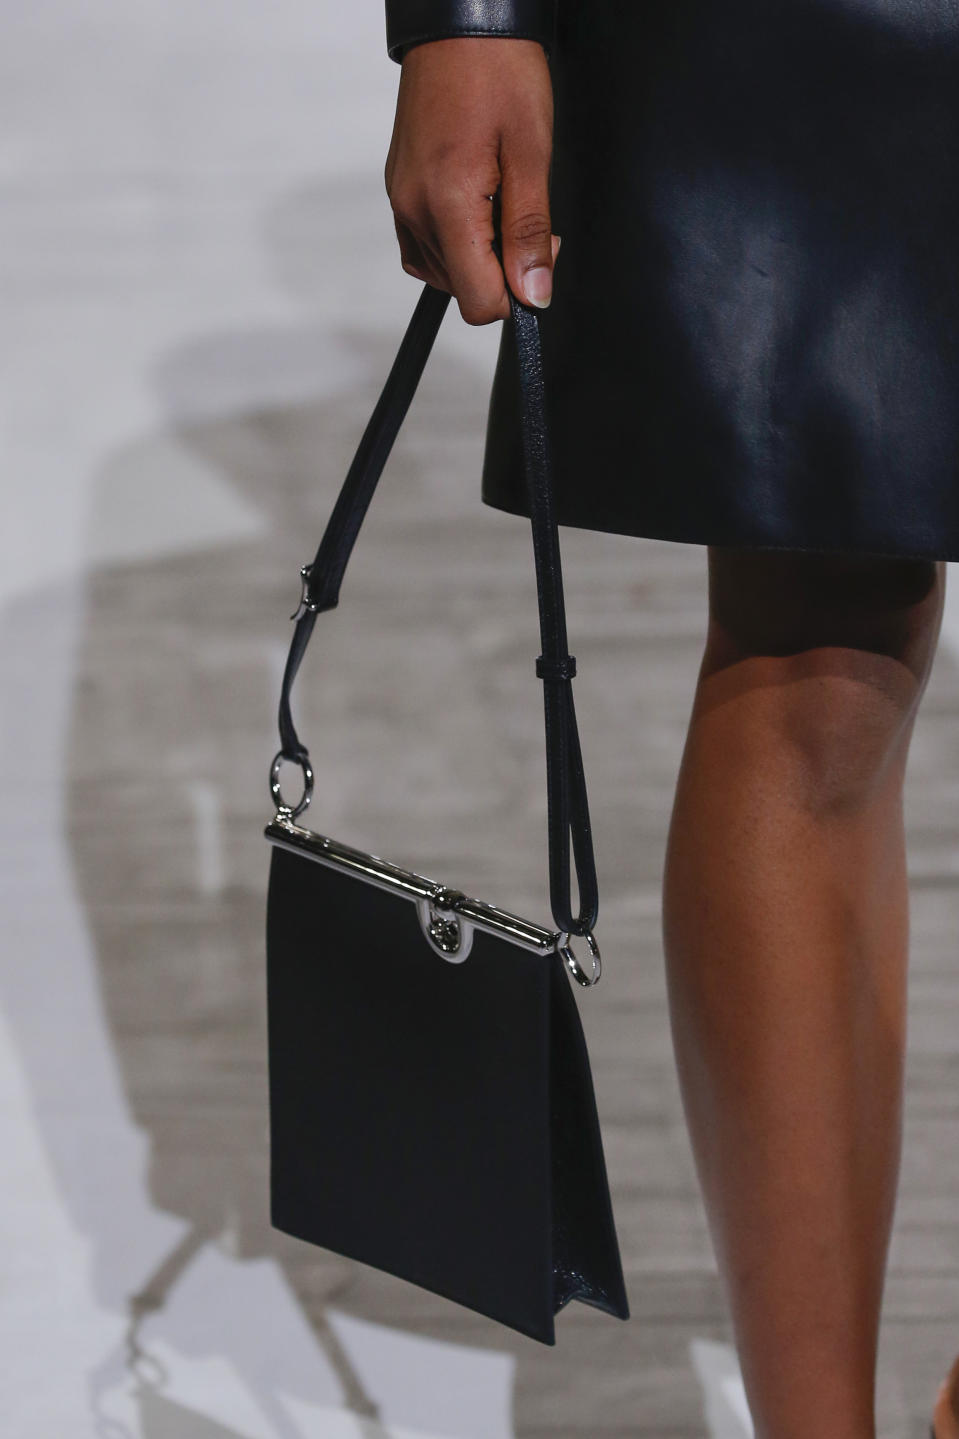 PARIS, FRANCE - OCTOBER 03: A model walks the runway during the Hermes Ready to Wear Spring/Summer 2021 fashion show as part of Paris Fashion Week on October 03, 2020 in Paris, France. (Photo by Victor VIRGILE/Gamma-Rapho via Getty Images)